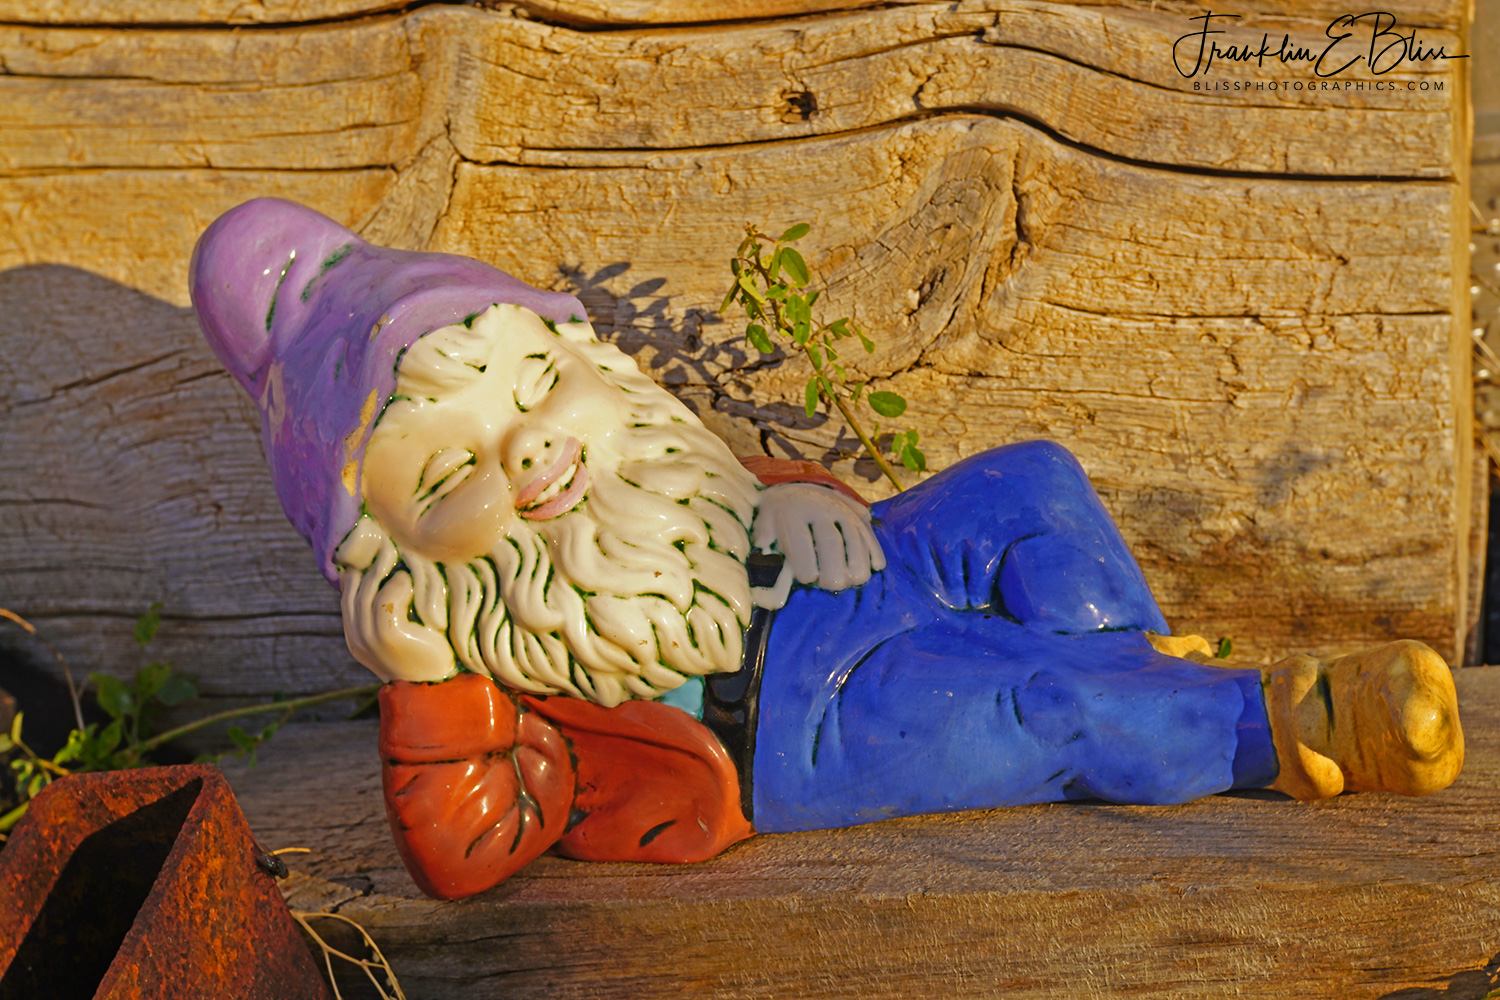 Napping Gnome Last Day of Autumn